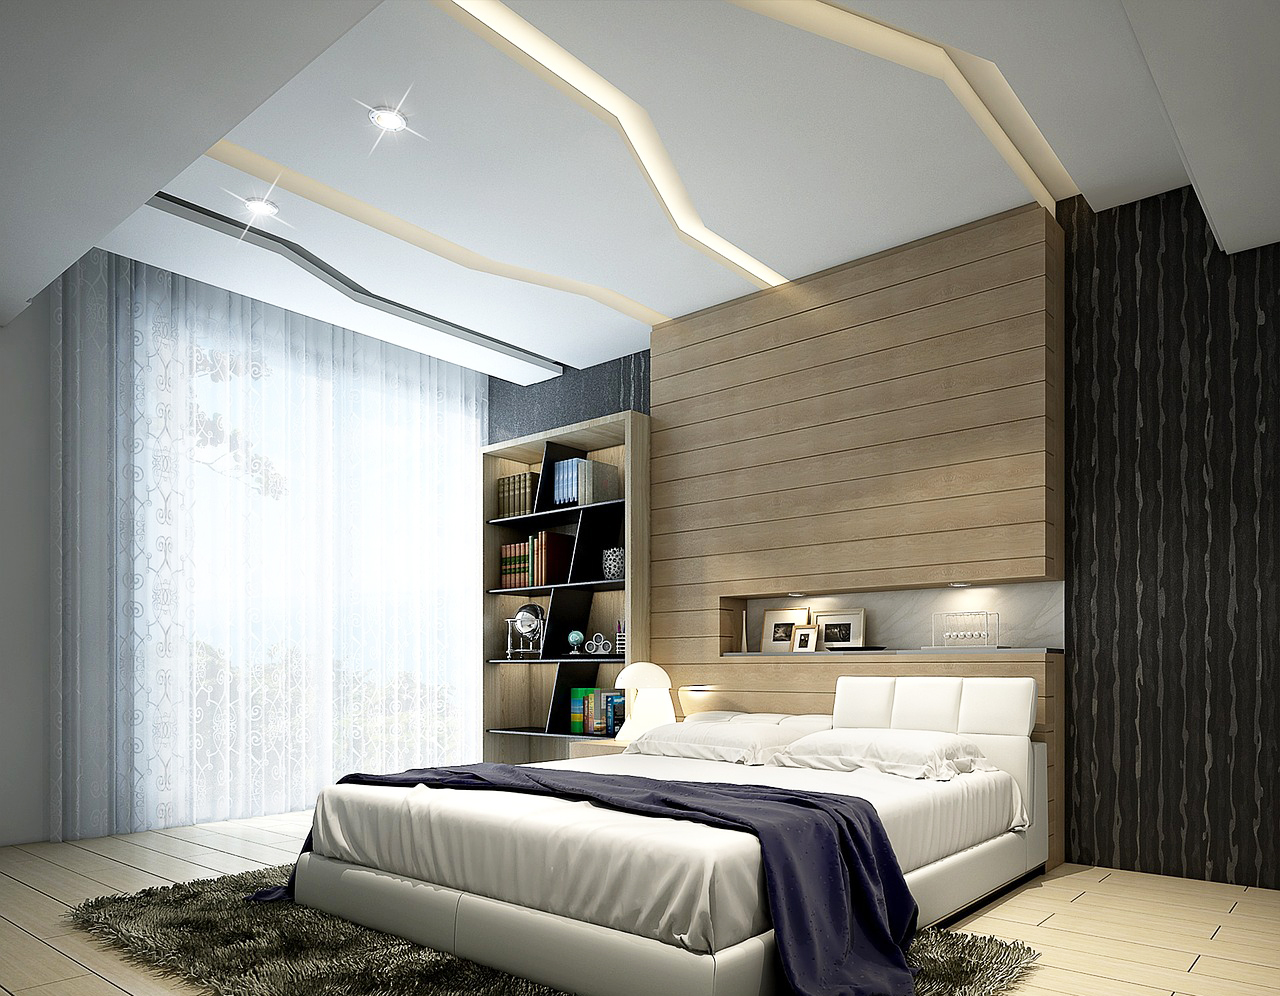 Bedroom Overhead Lighting Ideas Bedroom Ceiling Design Creative Choices And Features